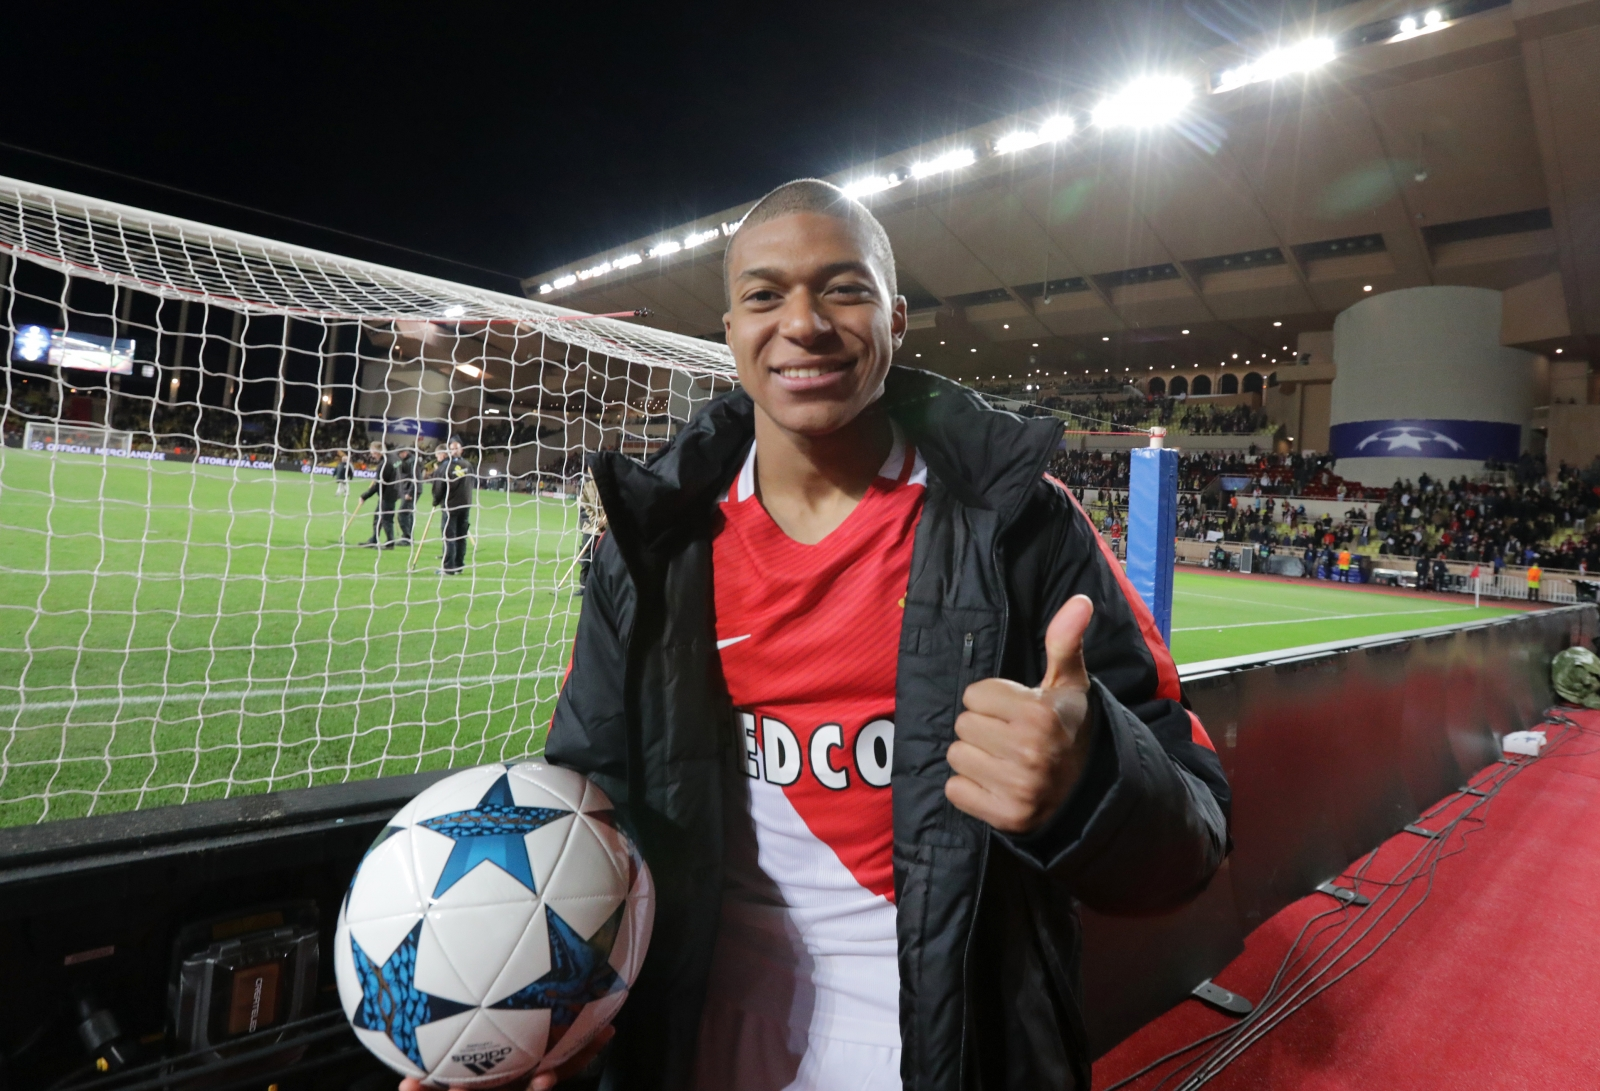 Mbappe? Wenger may as well as say Arsenal want Messi